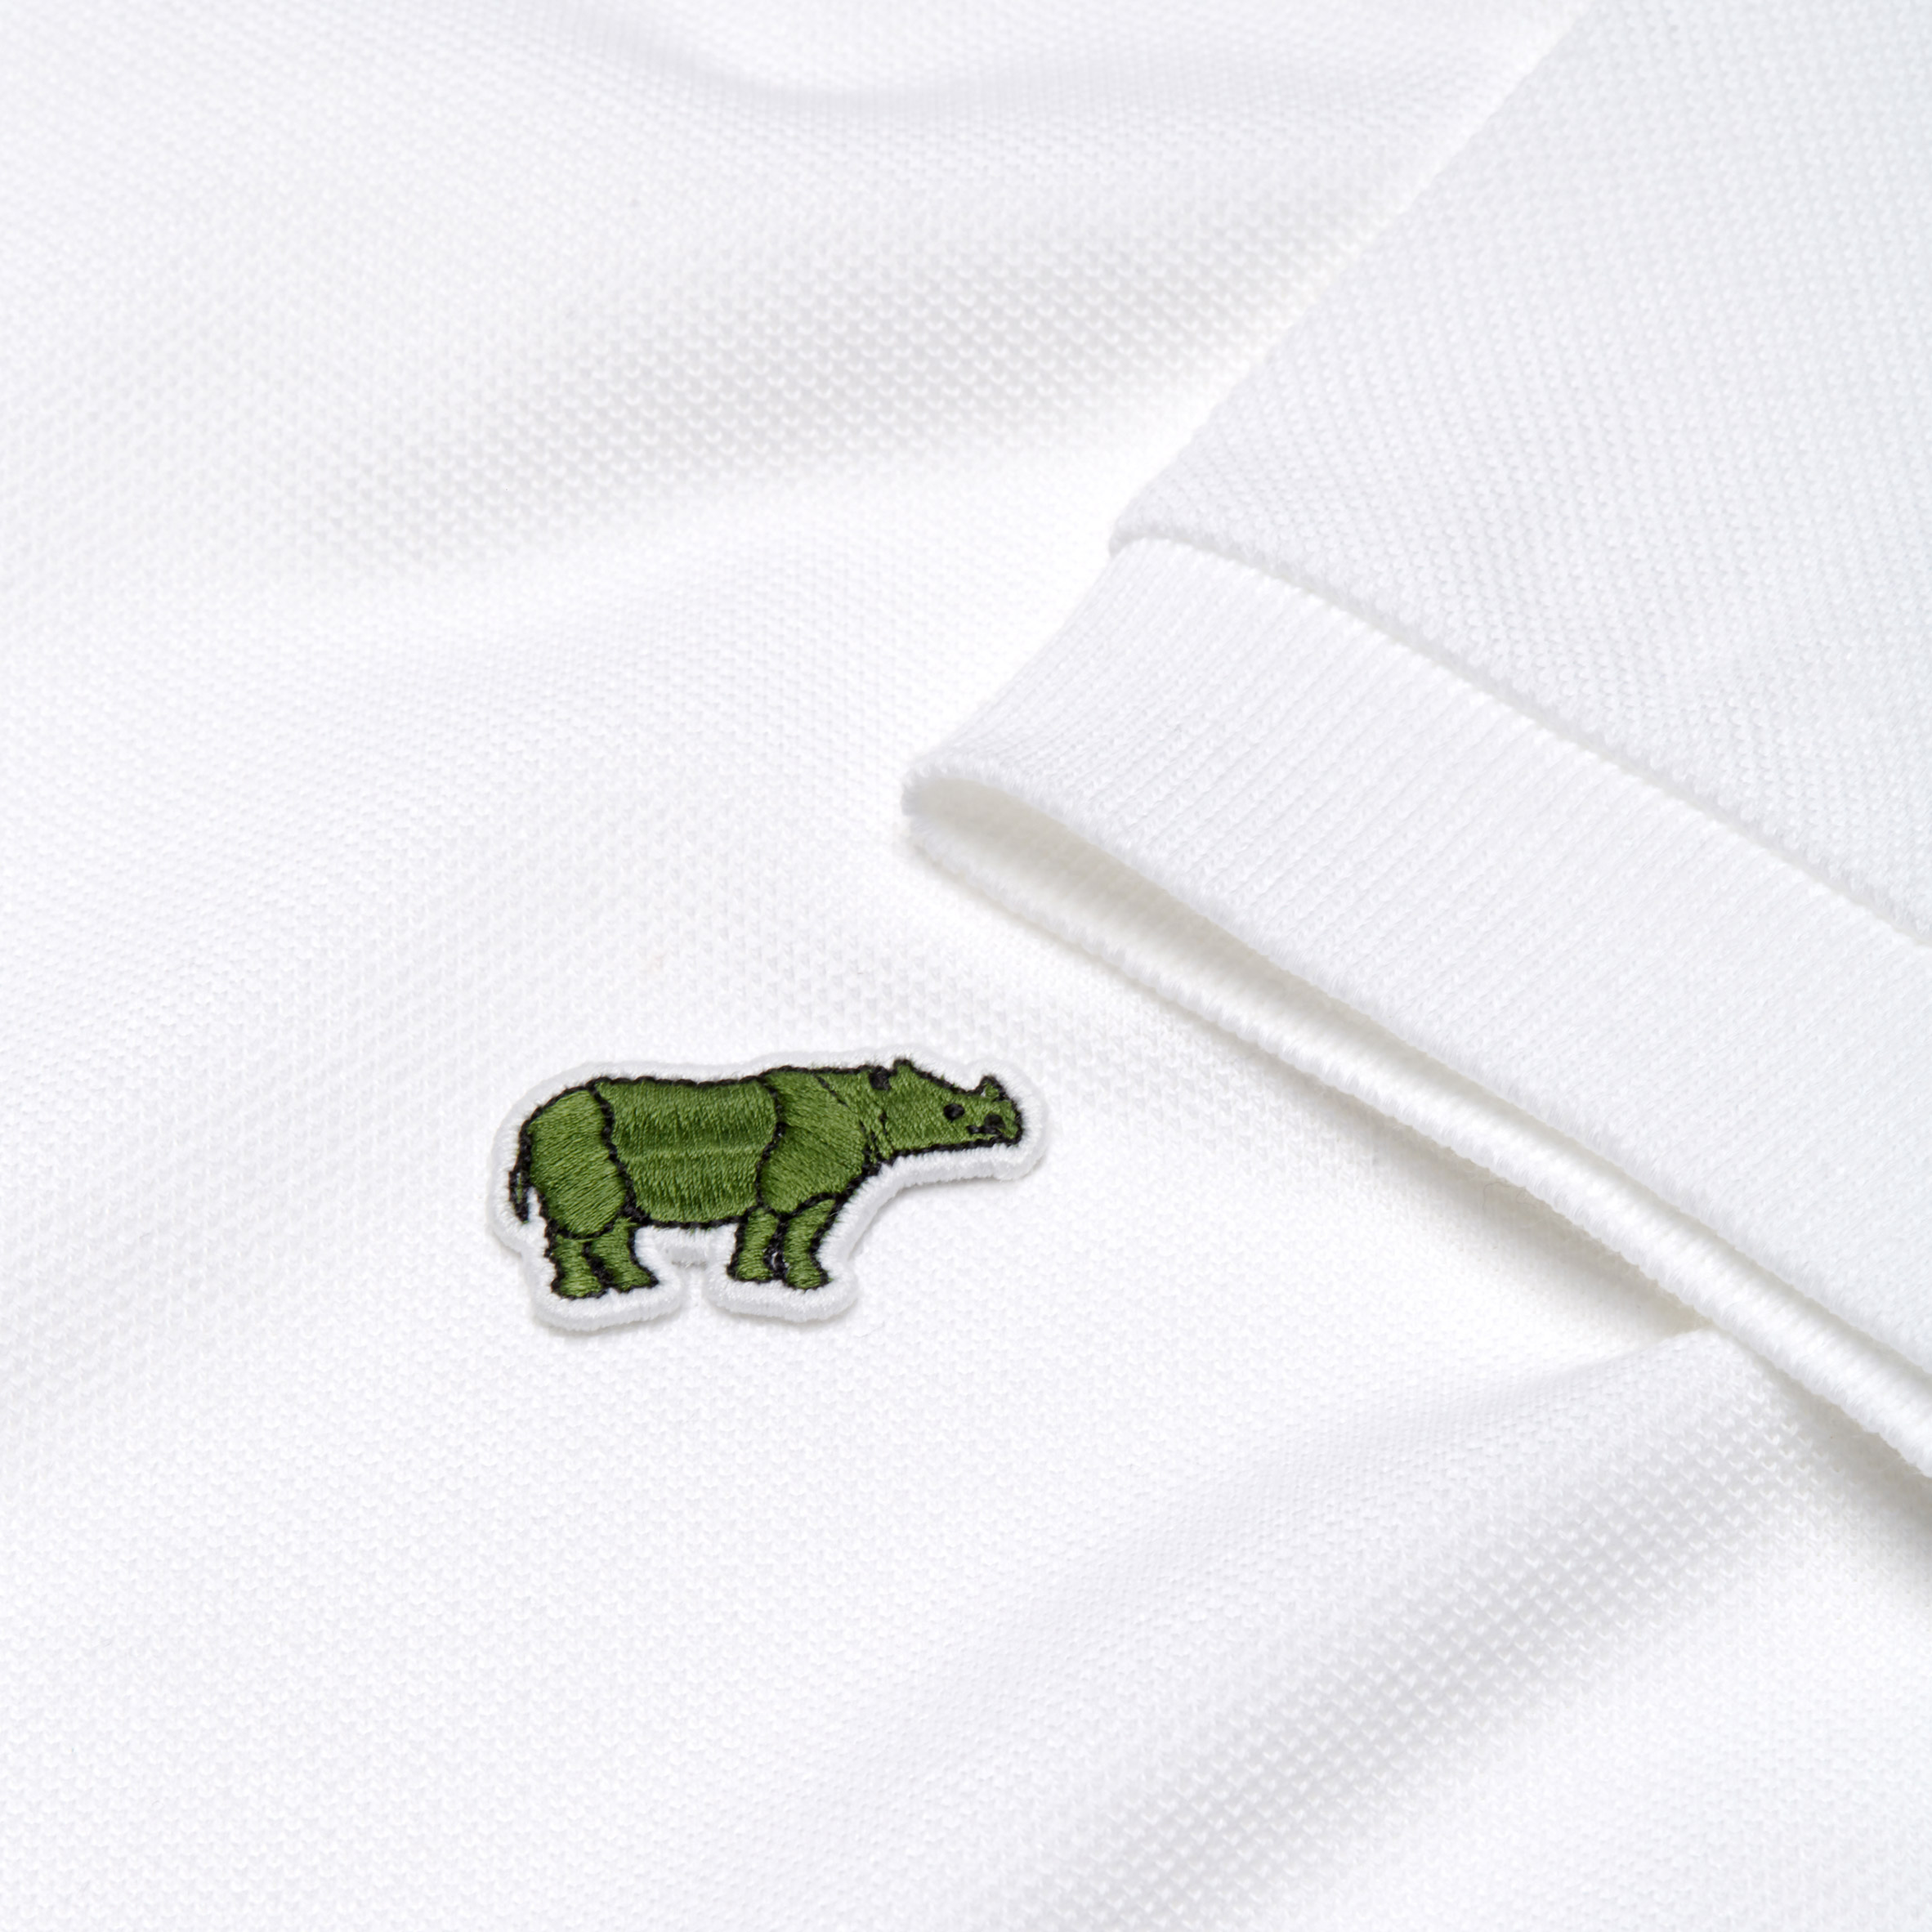 Lacoste's crocodile logo is replaced by endangered species for limited edition polo shirts